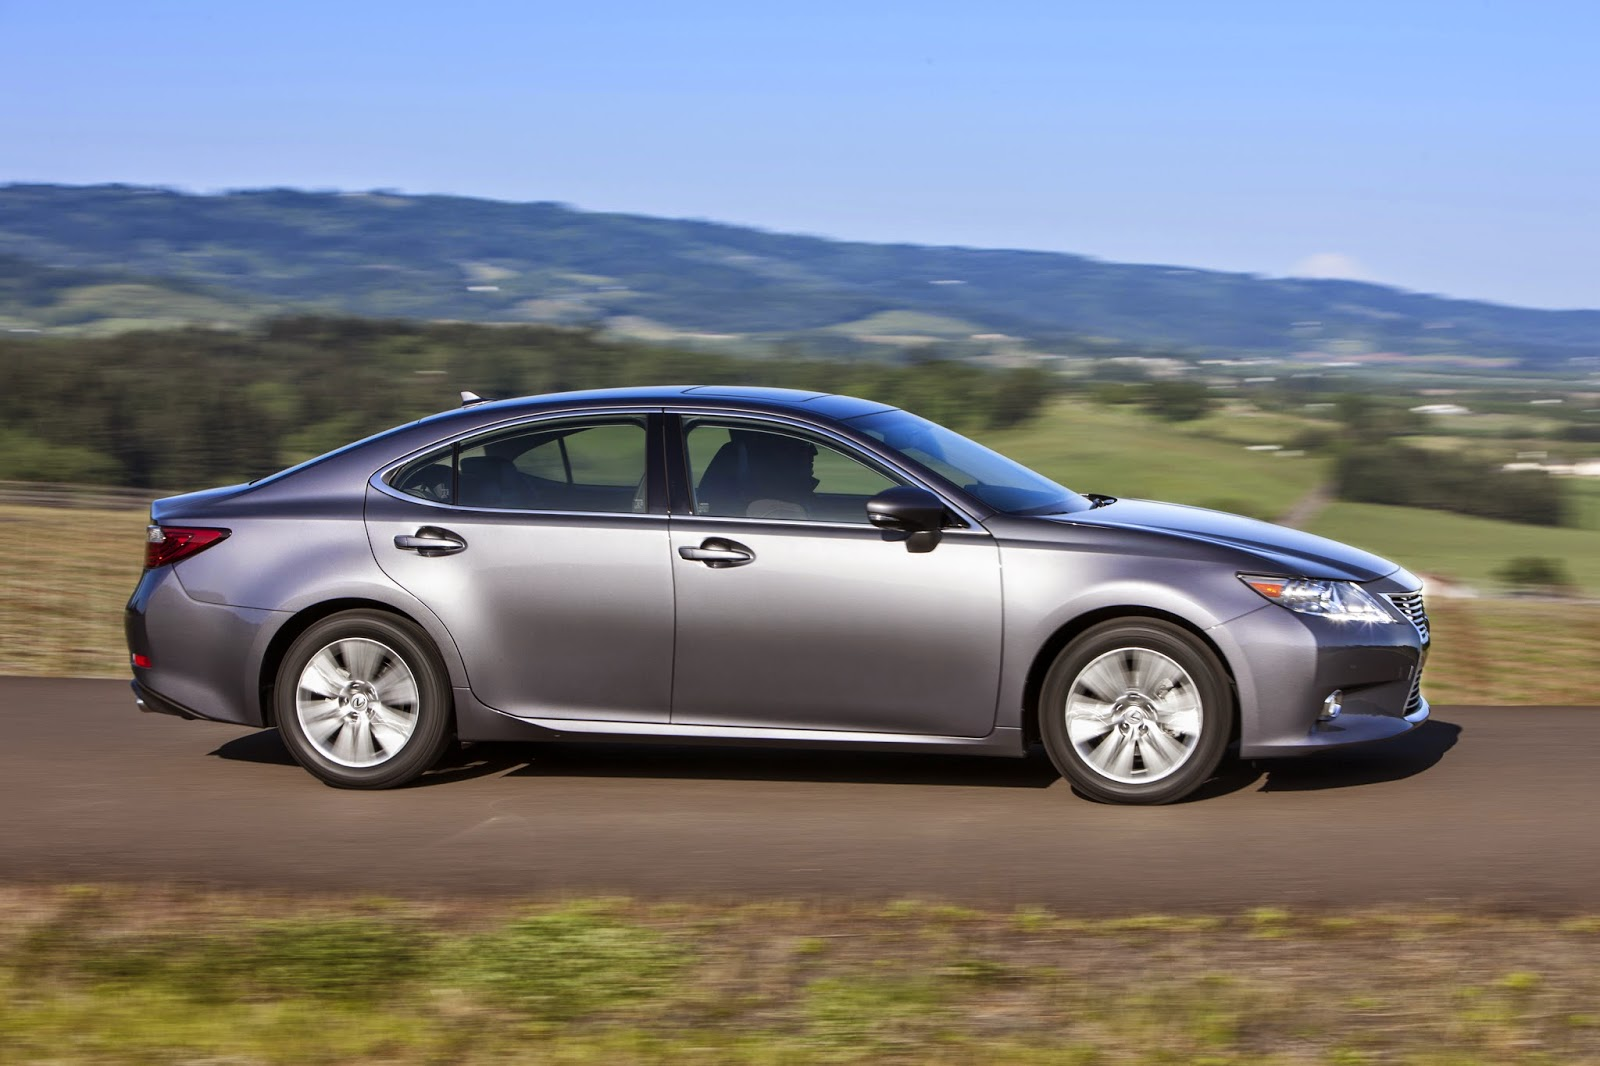 Side view of 2015 Lexus ES350